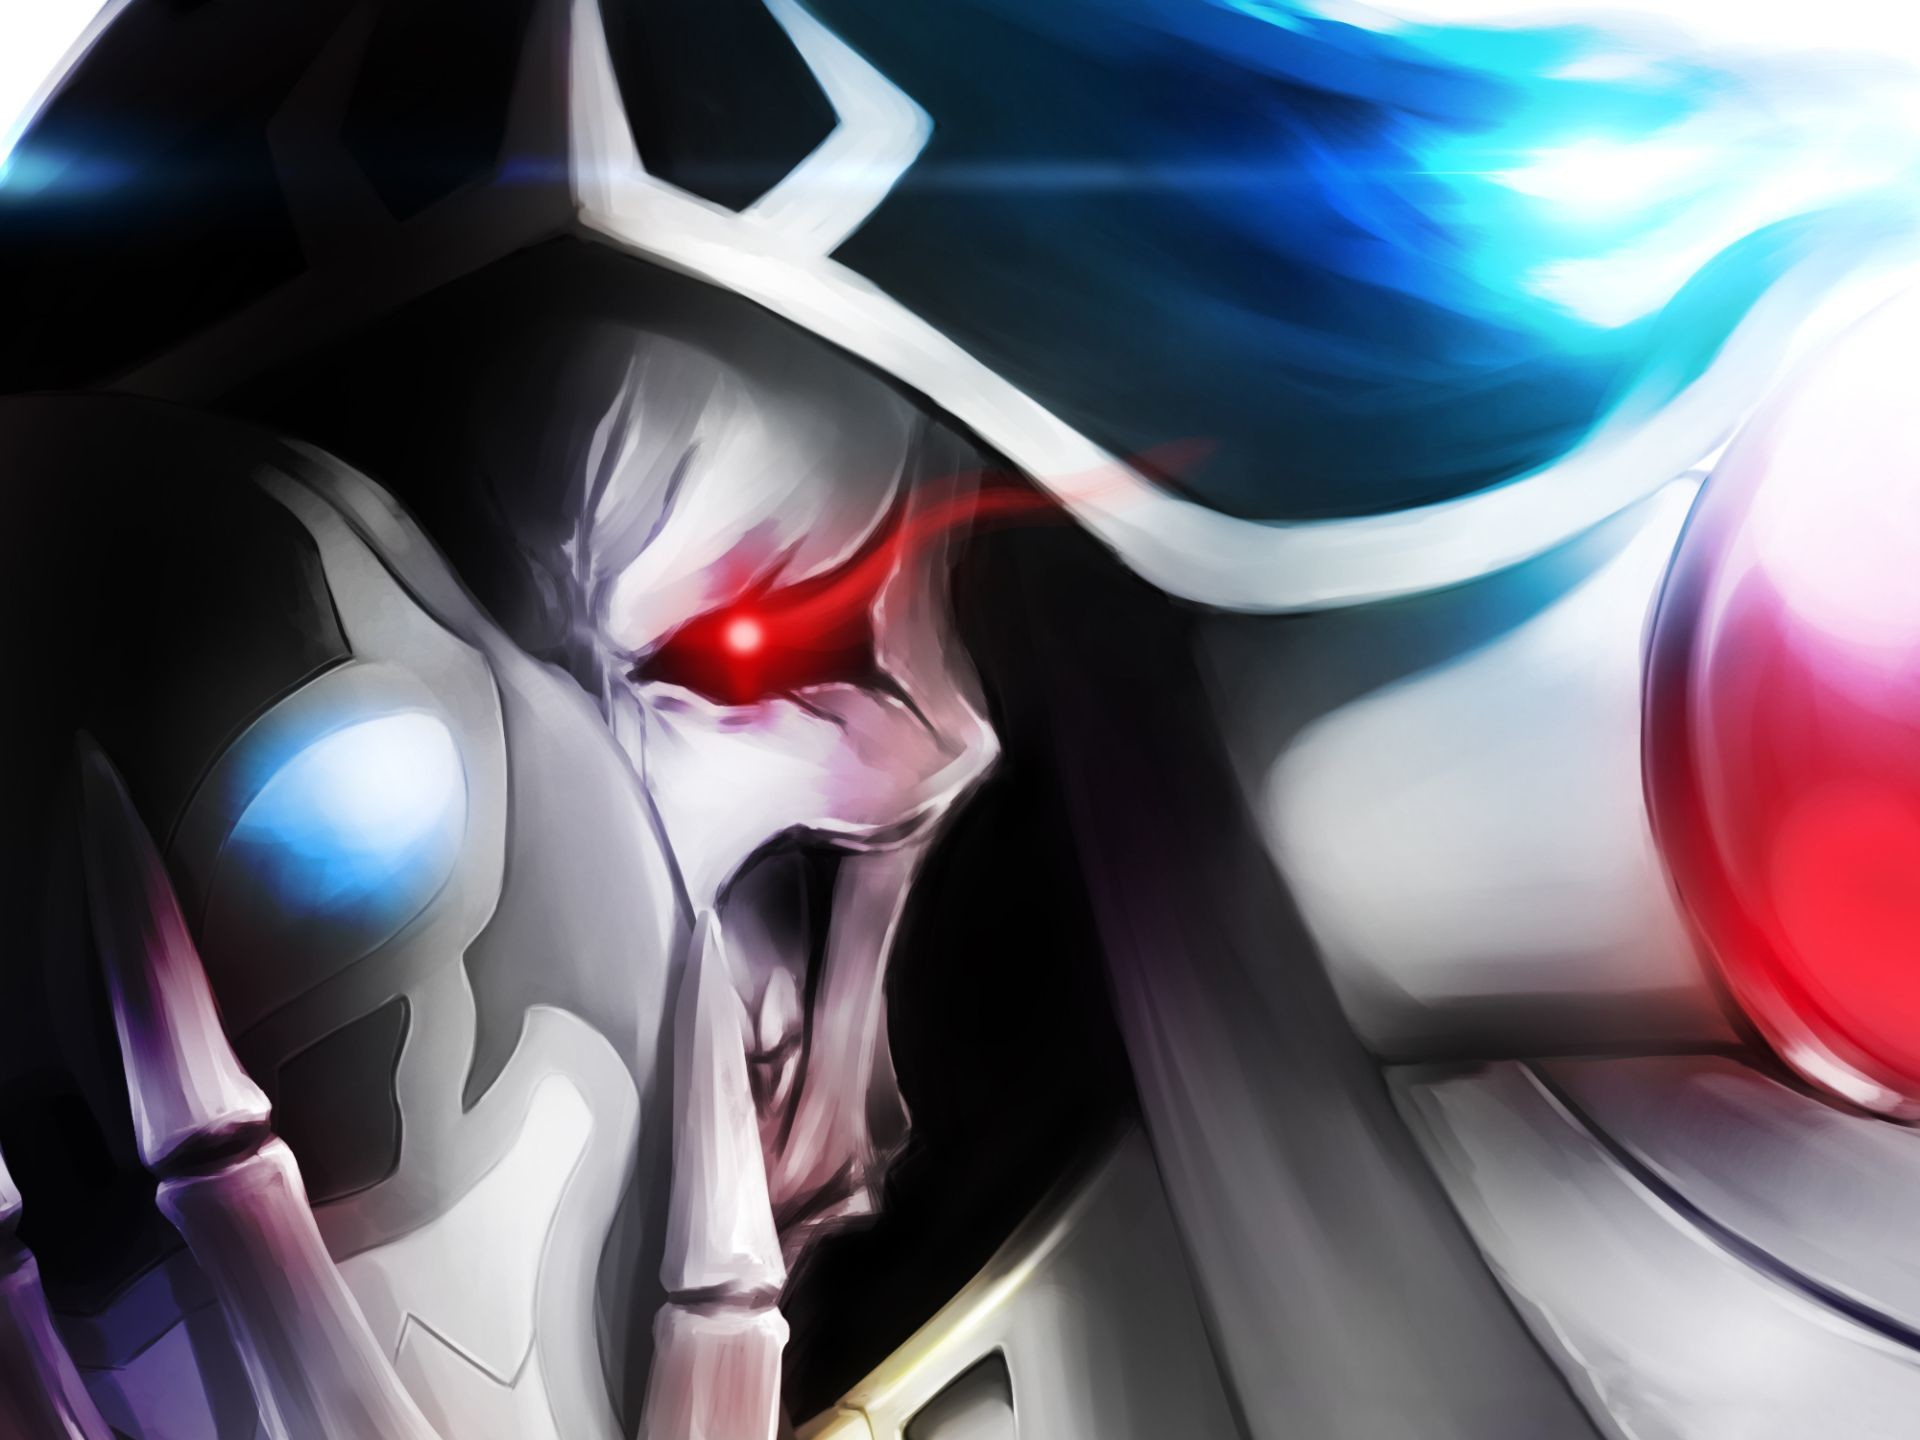 Res: 1920x1440, Anime Overlord Ainz Ooal Gown Overlord (Anime) Wallpaper